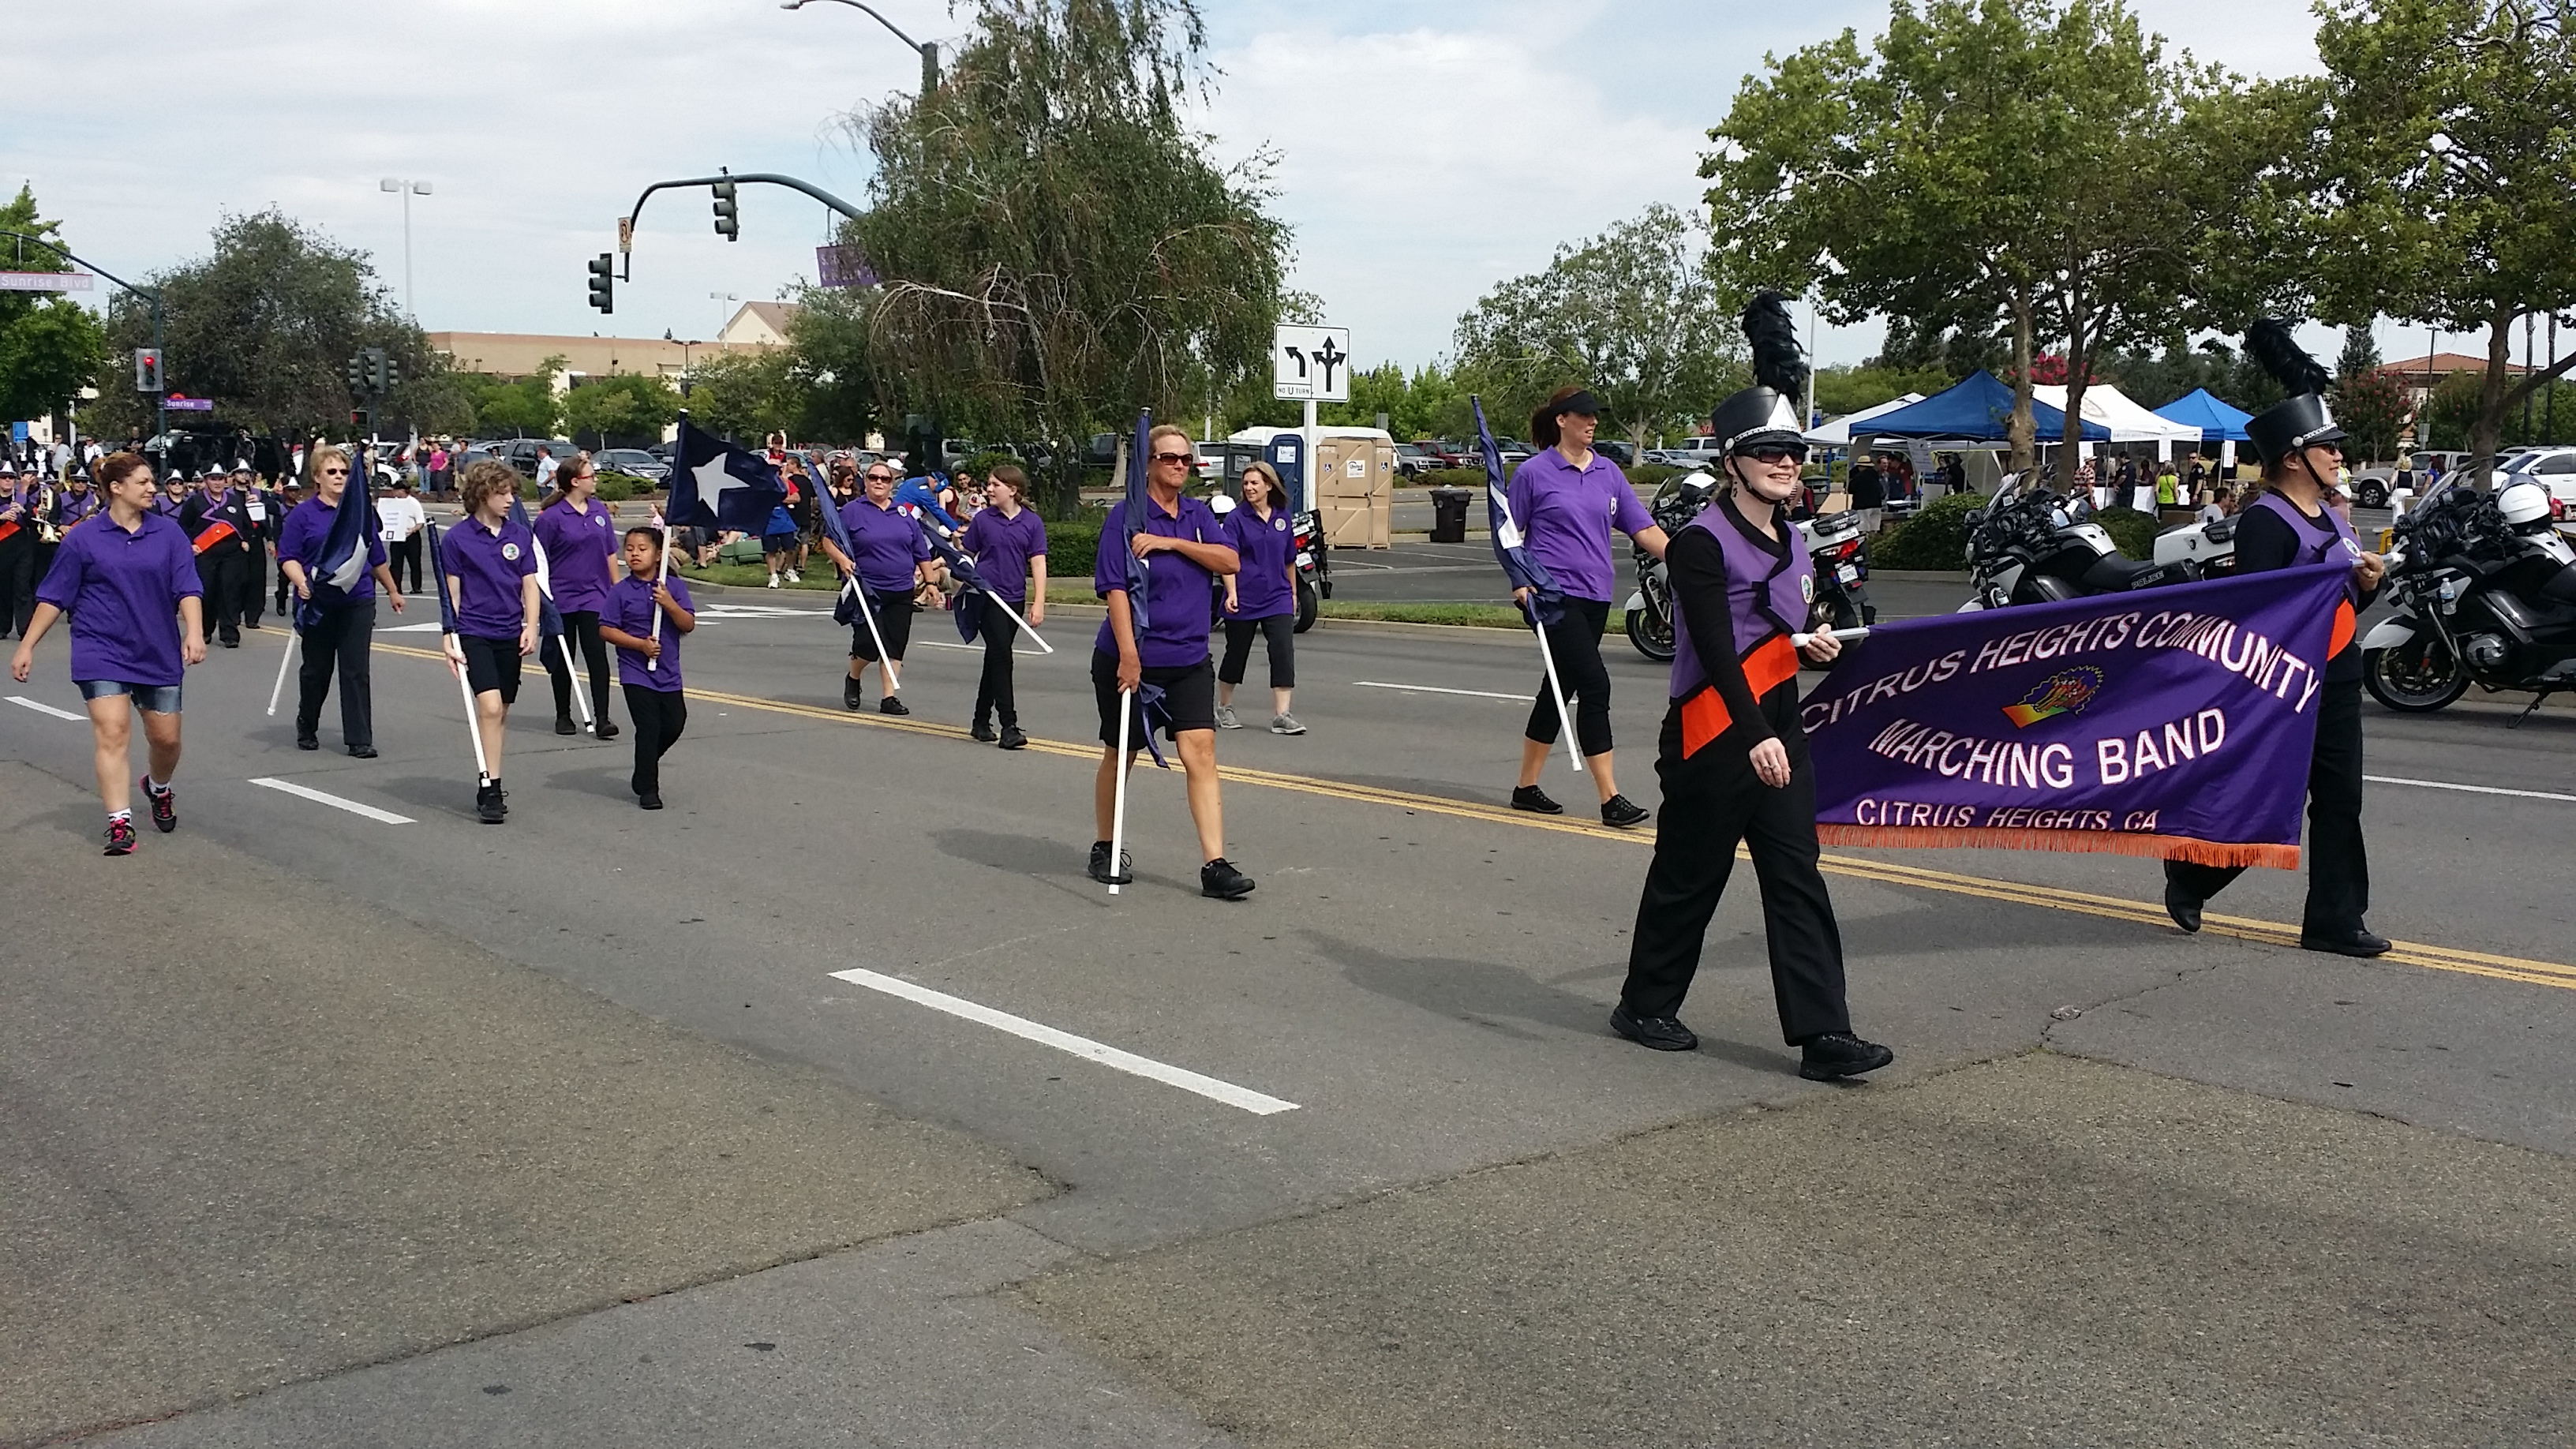 The Citrus Heights Community Marching Band